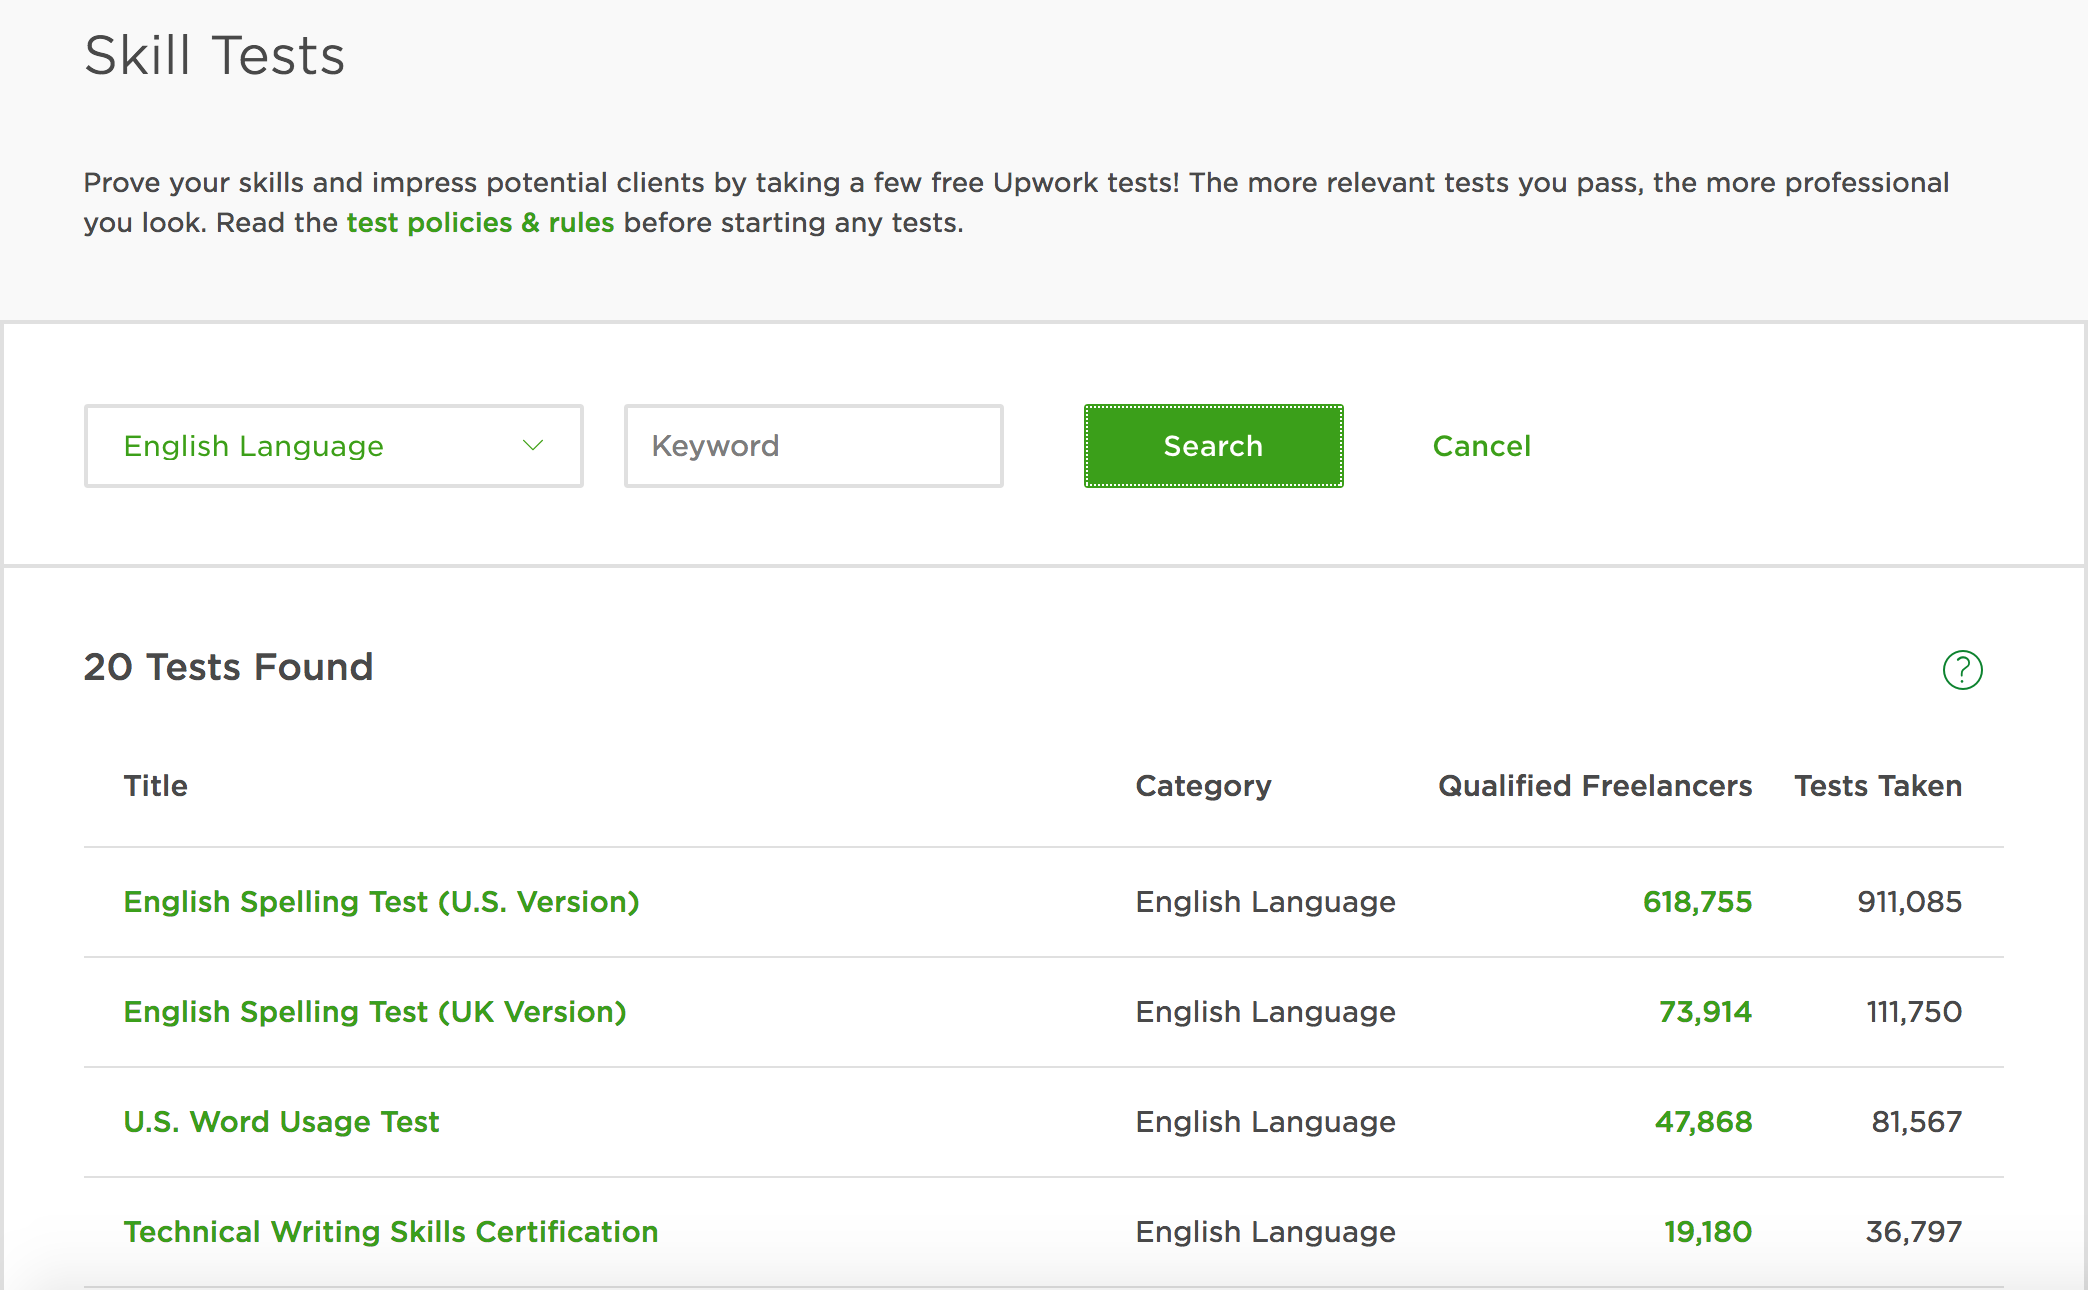 Solved: UK English Basic Skills test is not in the li... - Upwork ...